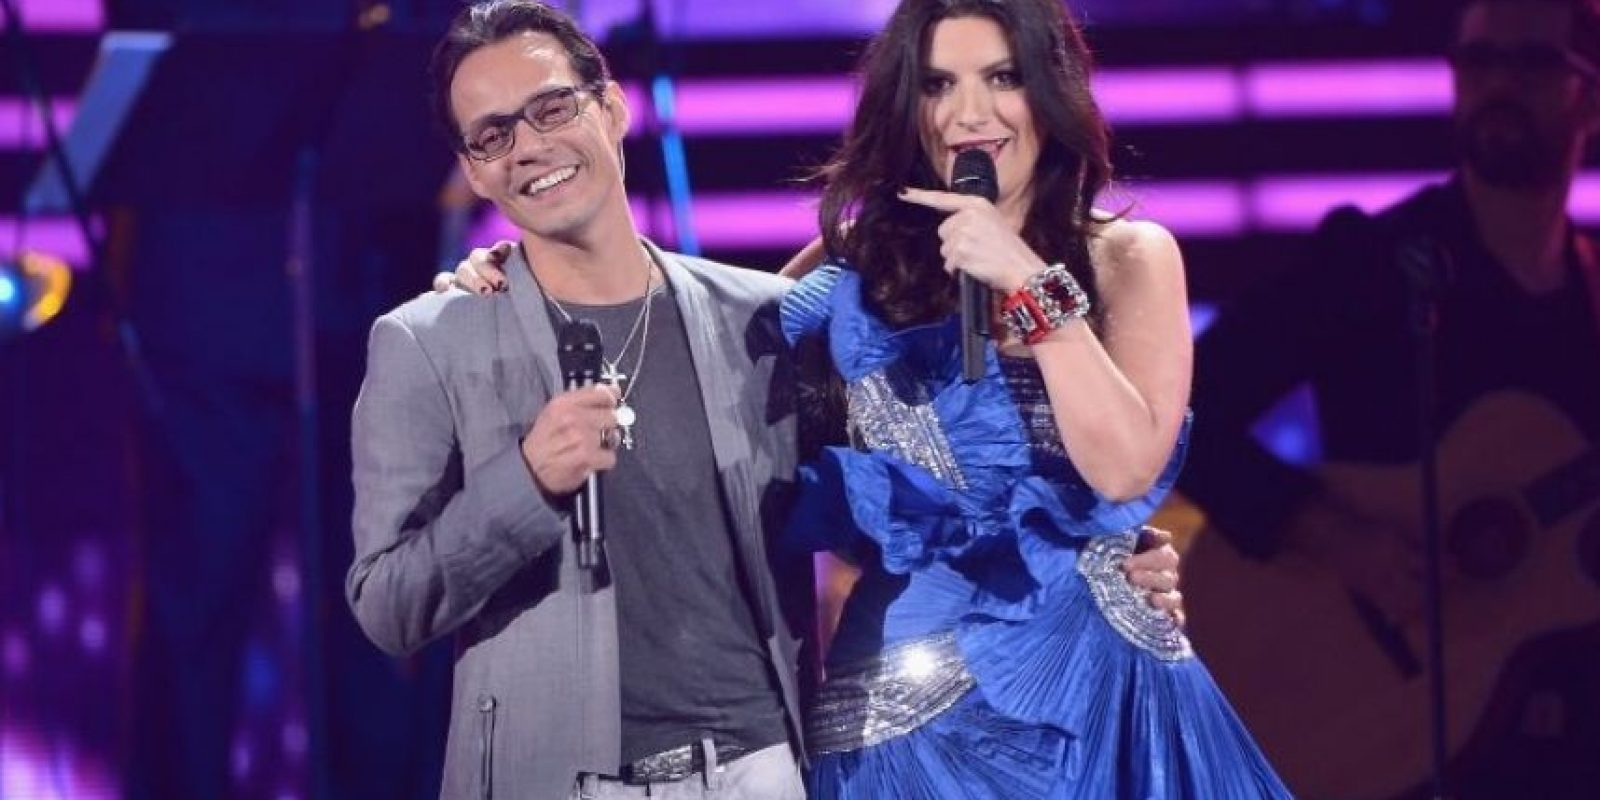 3. Tendrá invitados de lujo como: Marc Anthony, Laura Pausini Foto: Getty Images